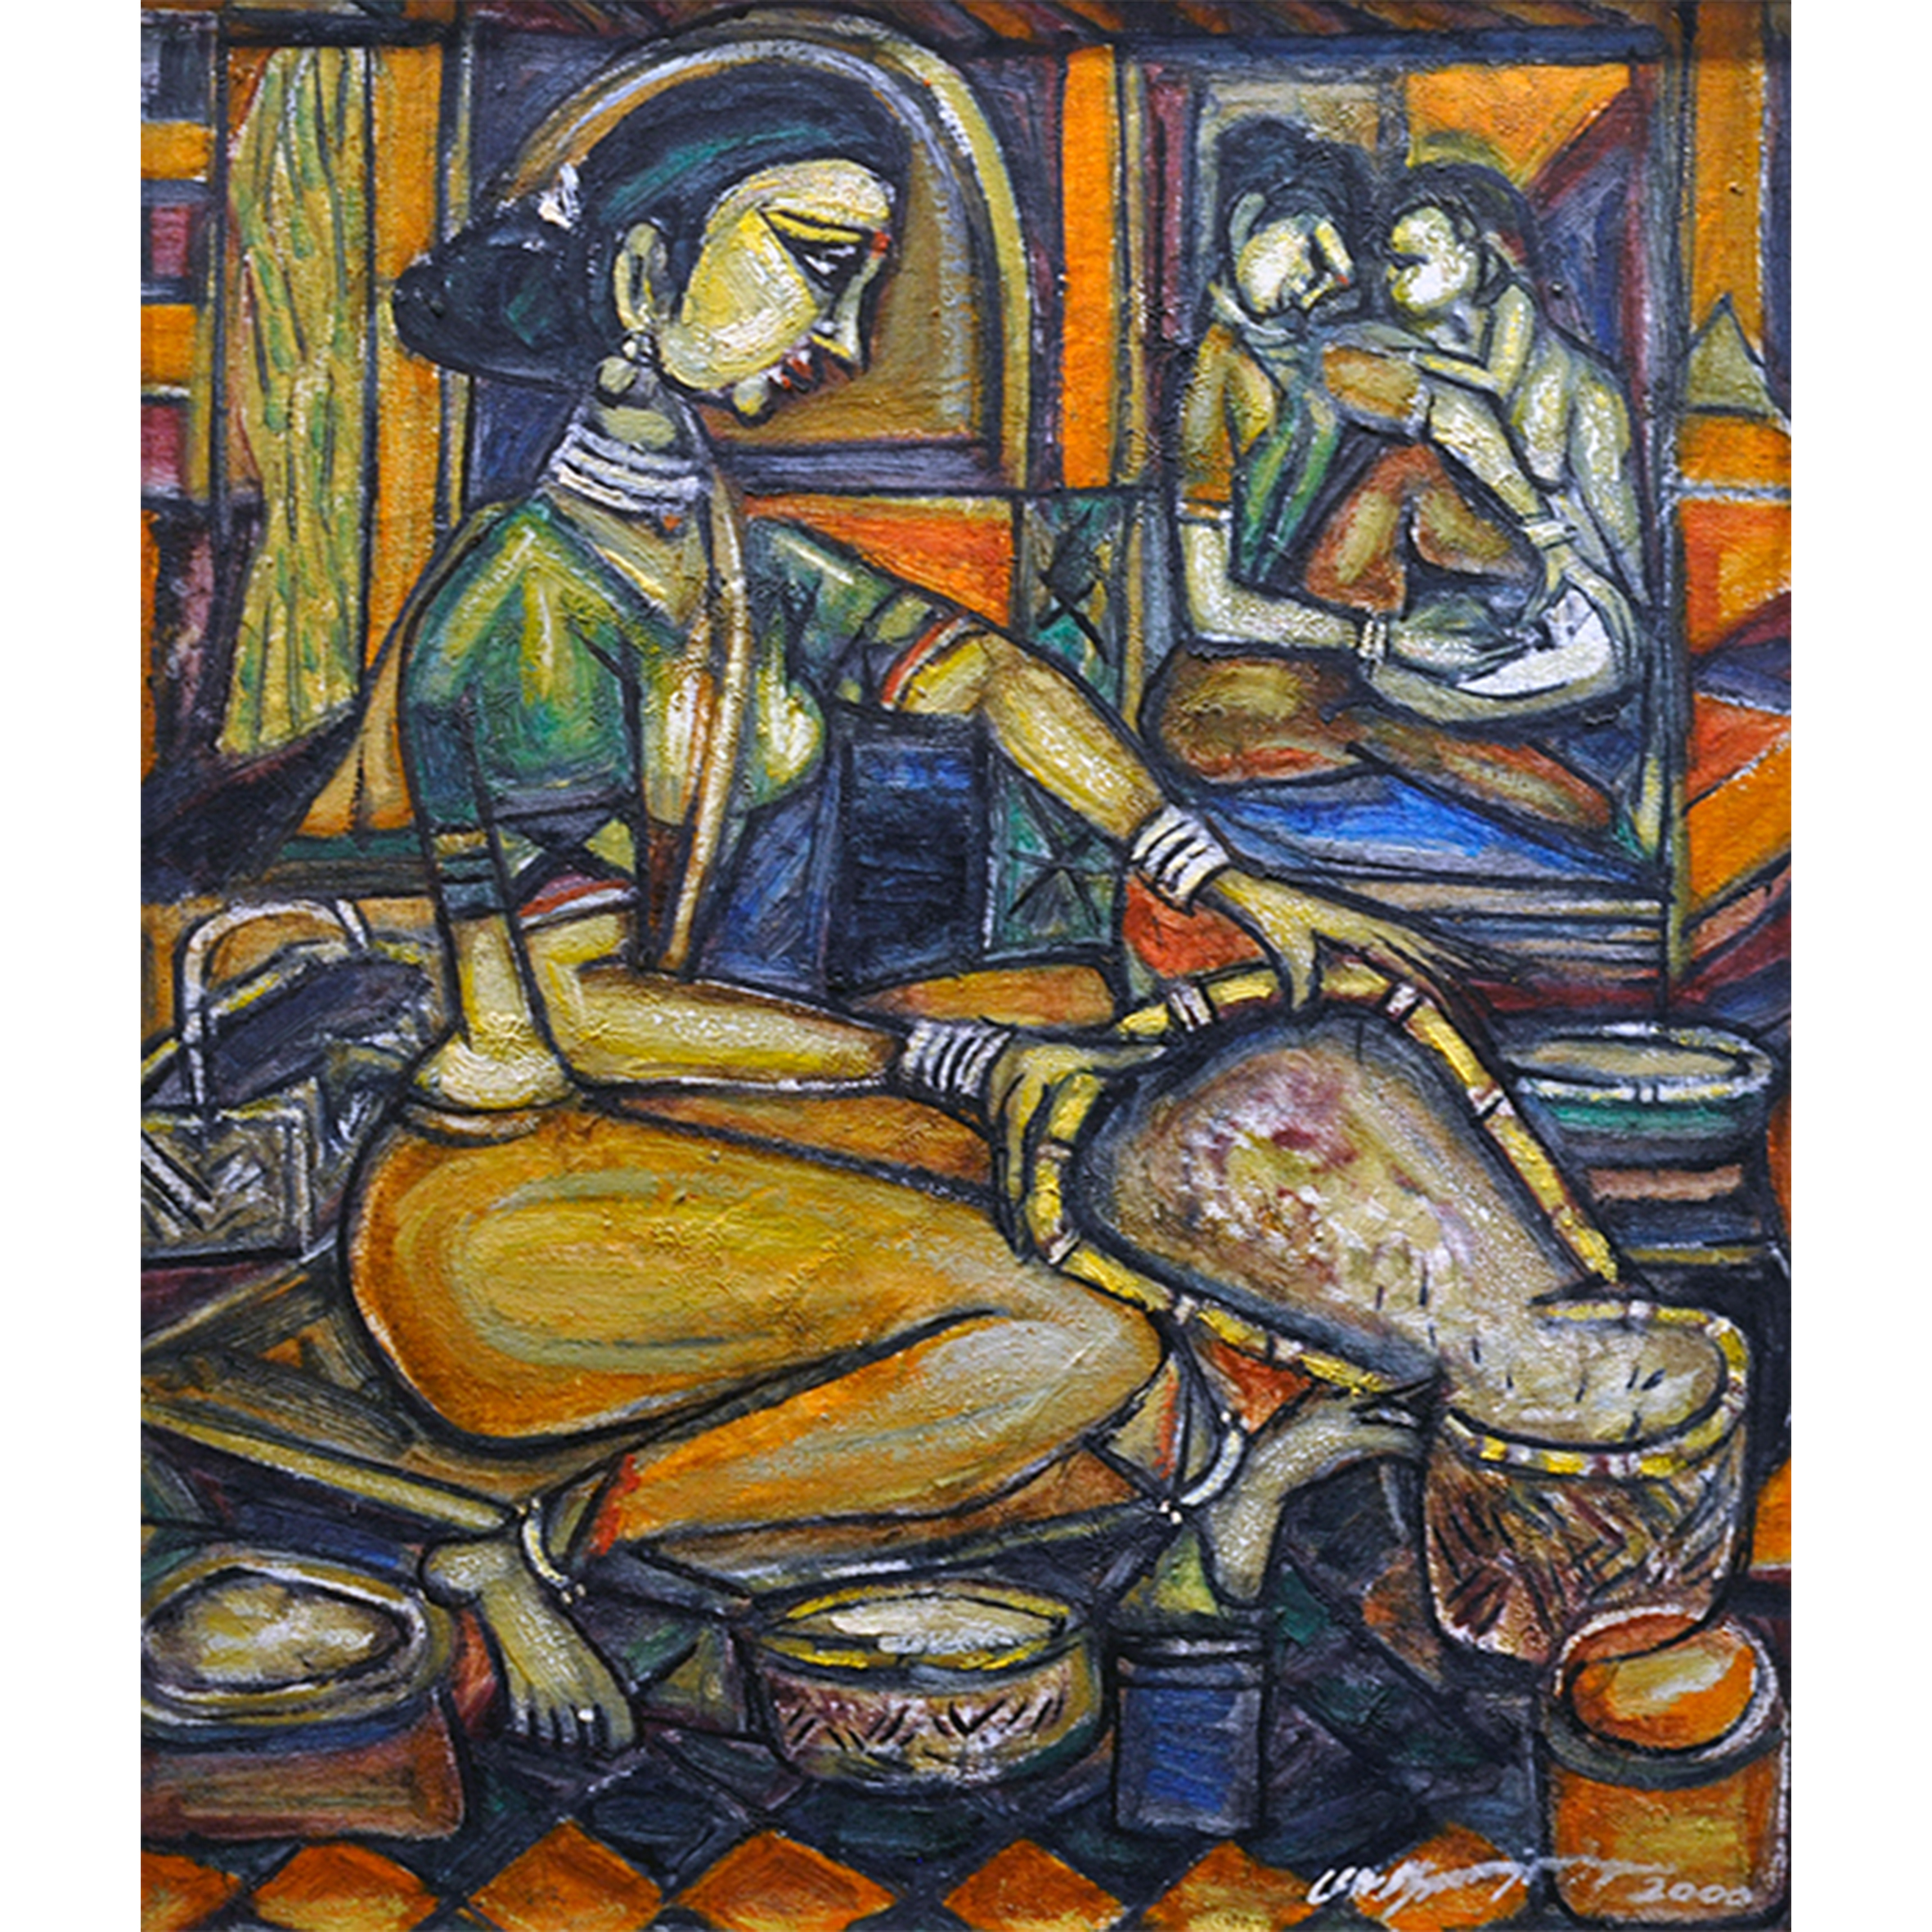 Village Life, 2003, Oil on Canvas, 58 x 65 cm.jpg